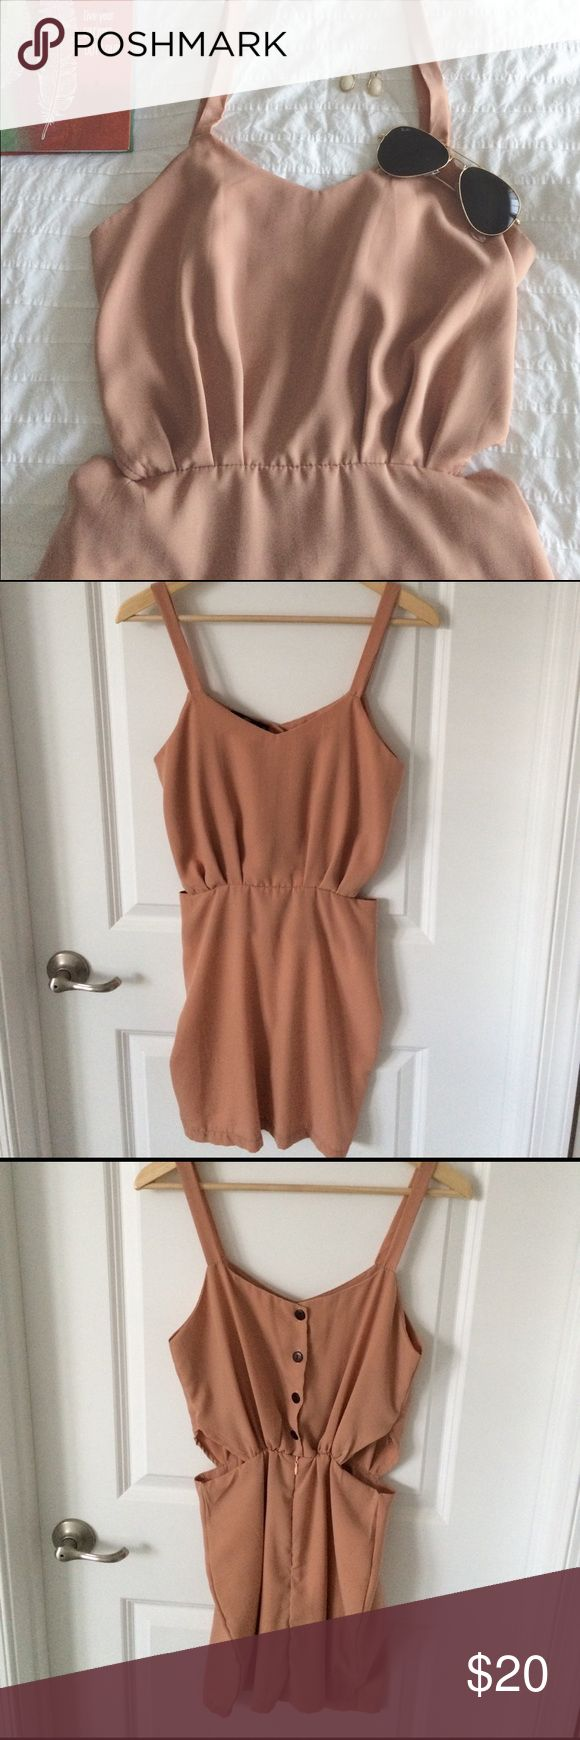 Nude Short Dress This is such a cute dress with zipper and buttons on the back side of the dress. Cut out details on both sides to show off your waist. This dress was a little tight on me as I normally wear a medium/ size 6. New but tags have been taken off. Dresses Mini